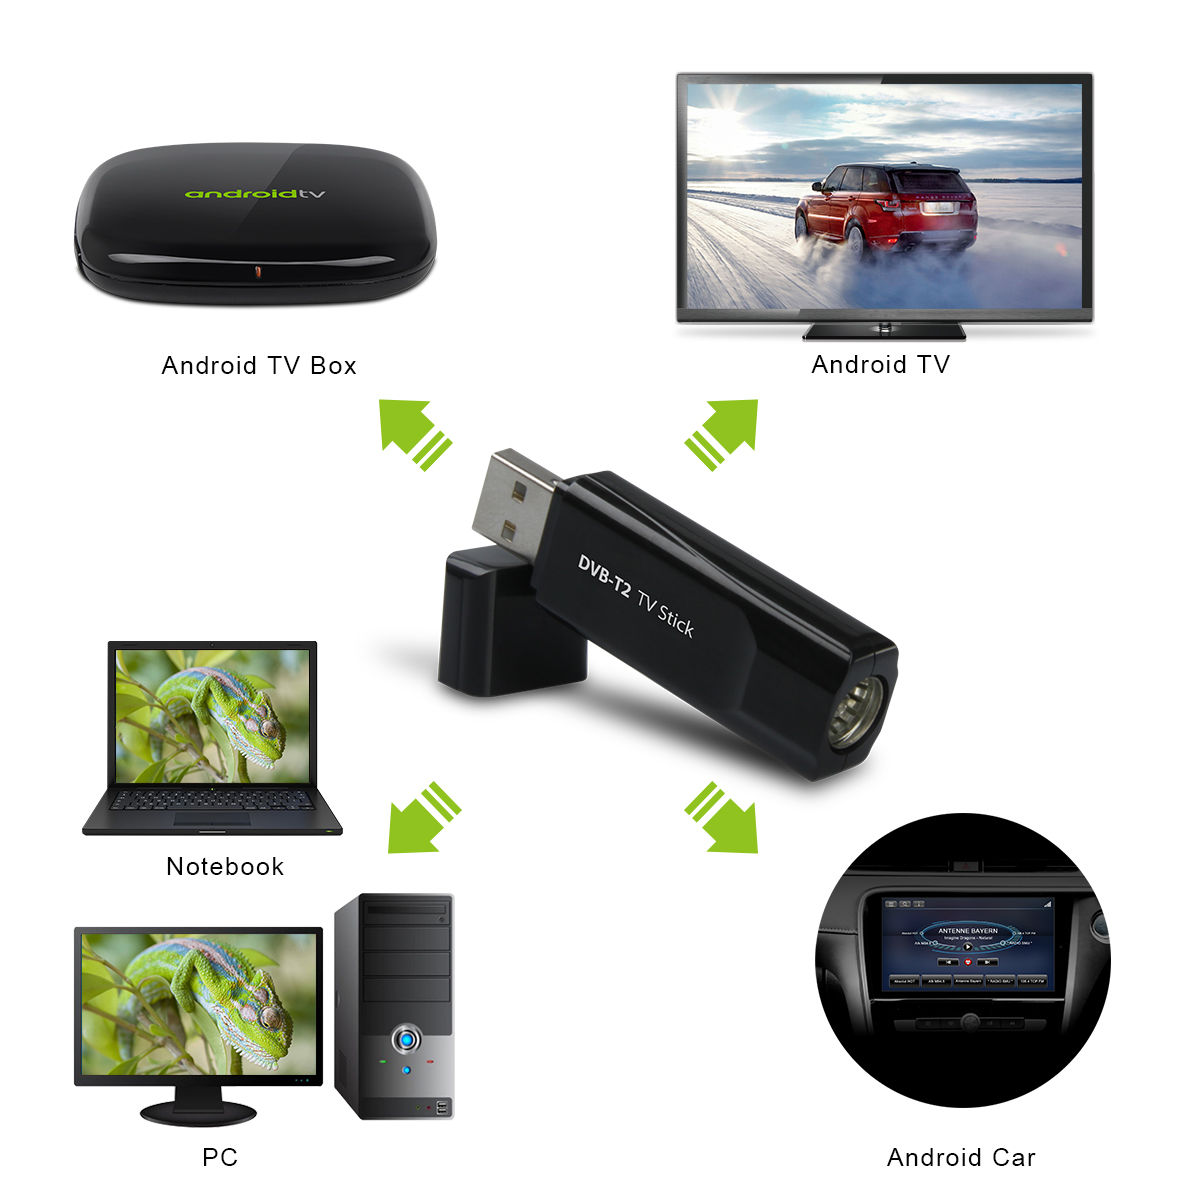 MyGica USB TV Tuner for PC & Android Car/STB/TV